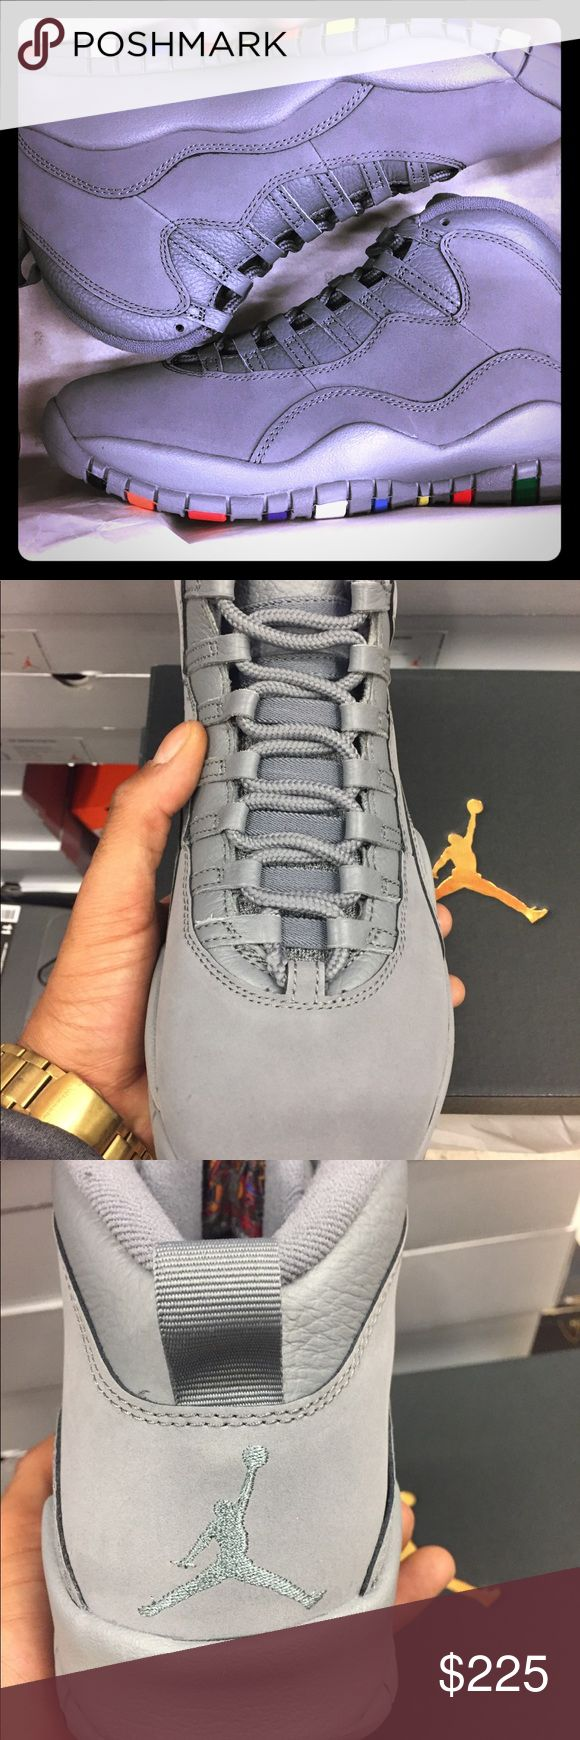 "Retro Jordan 10 ""cool grey w flavors"" DS Brand new never tried on pairs"